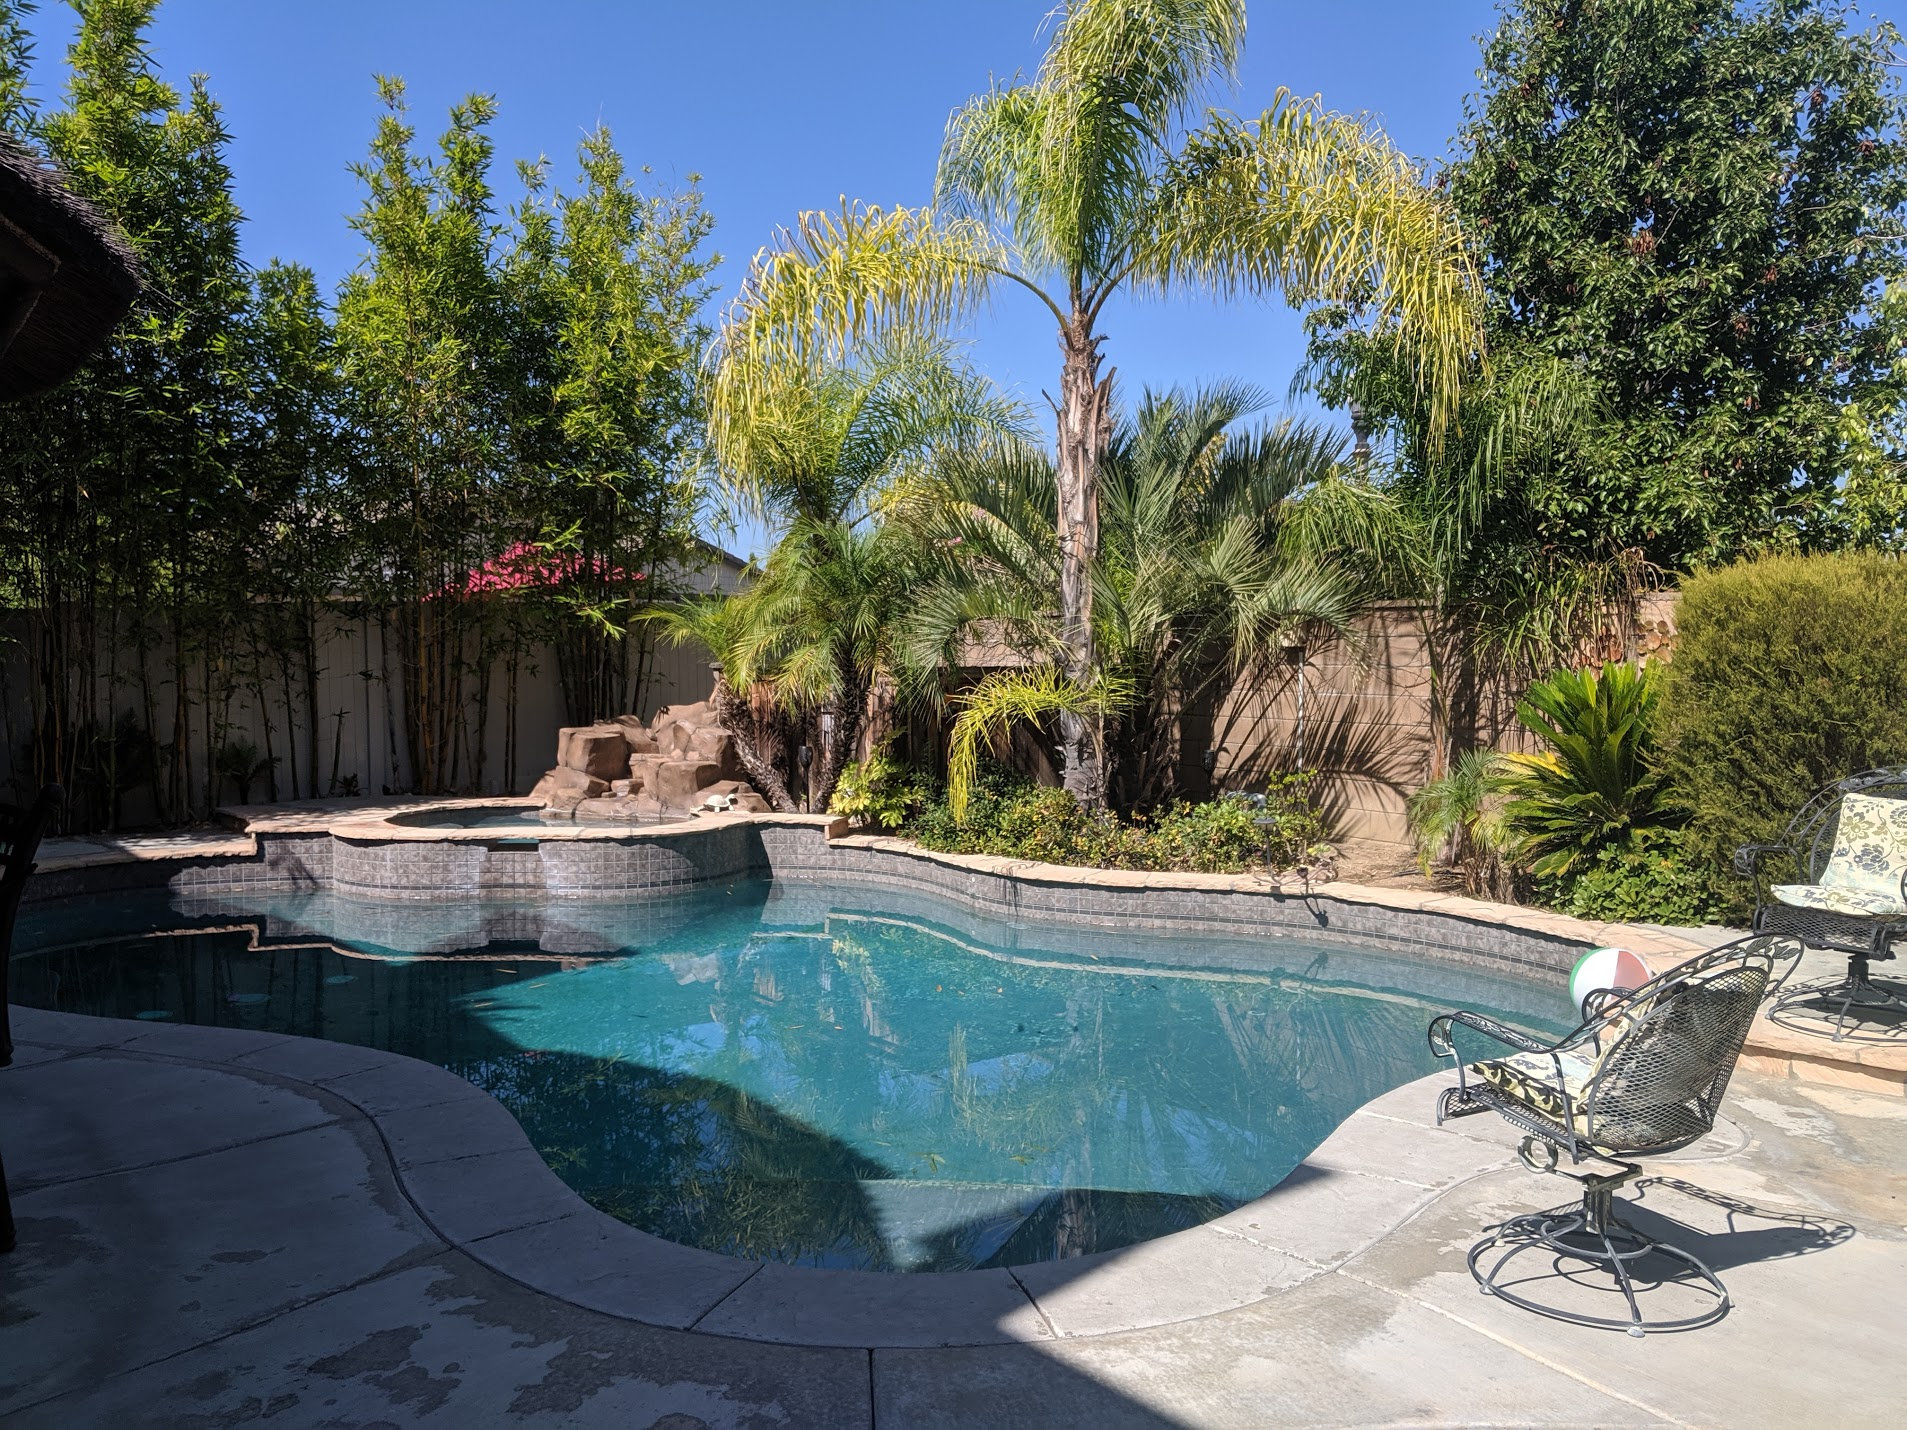 Spectacular Temecula Oasis in Wine Country - Temecula, CaliforniaType: Entire HouseBeds: 1 king, 2 queens, 2 doubles, 1 bunk bed (sleeps 12)Cost: $$$